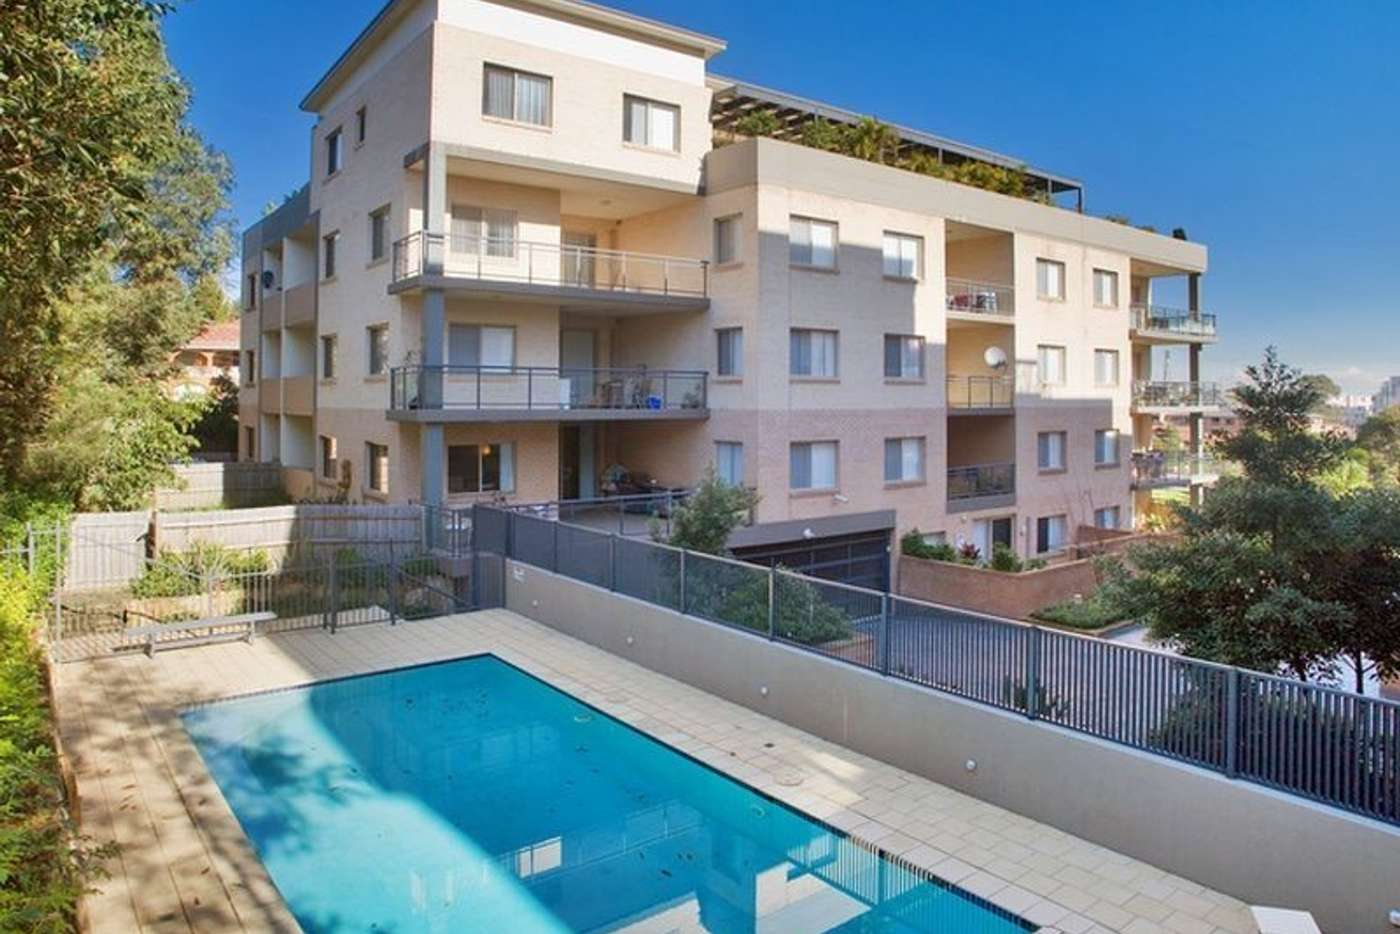 Main view of Homely apartment listing, 25/1-7 Young Road, Carlingford NSW 2118